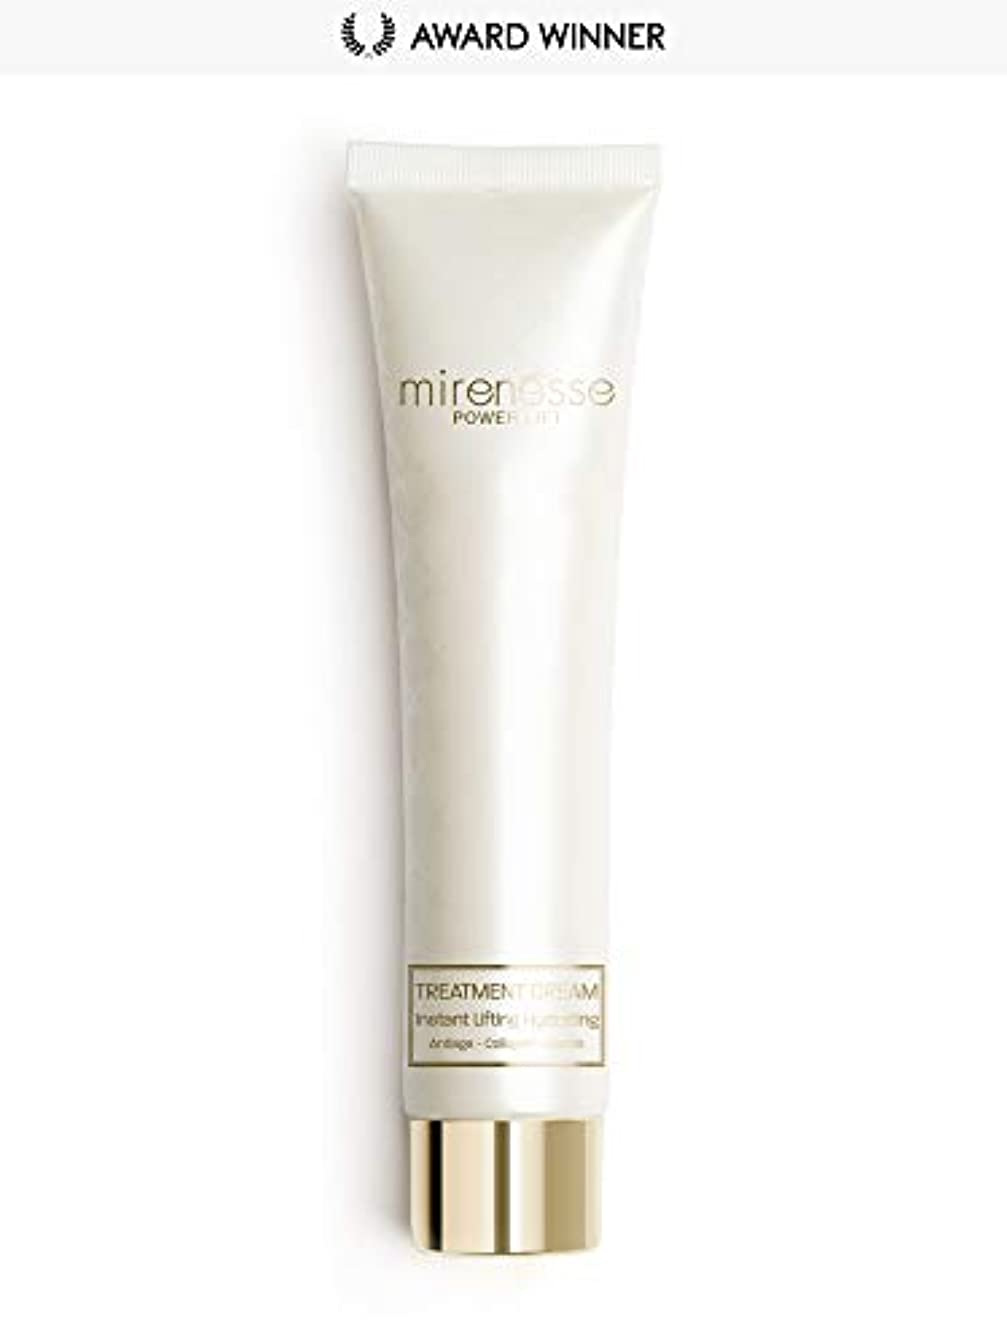 先例能力サイトMirenesse Cosmetics Power Lift Treatment Cream Moisturiser - Instant Lifting